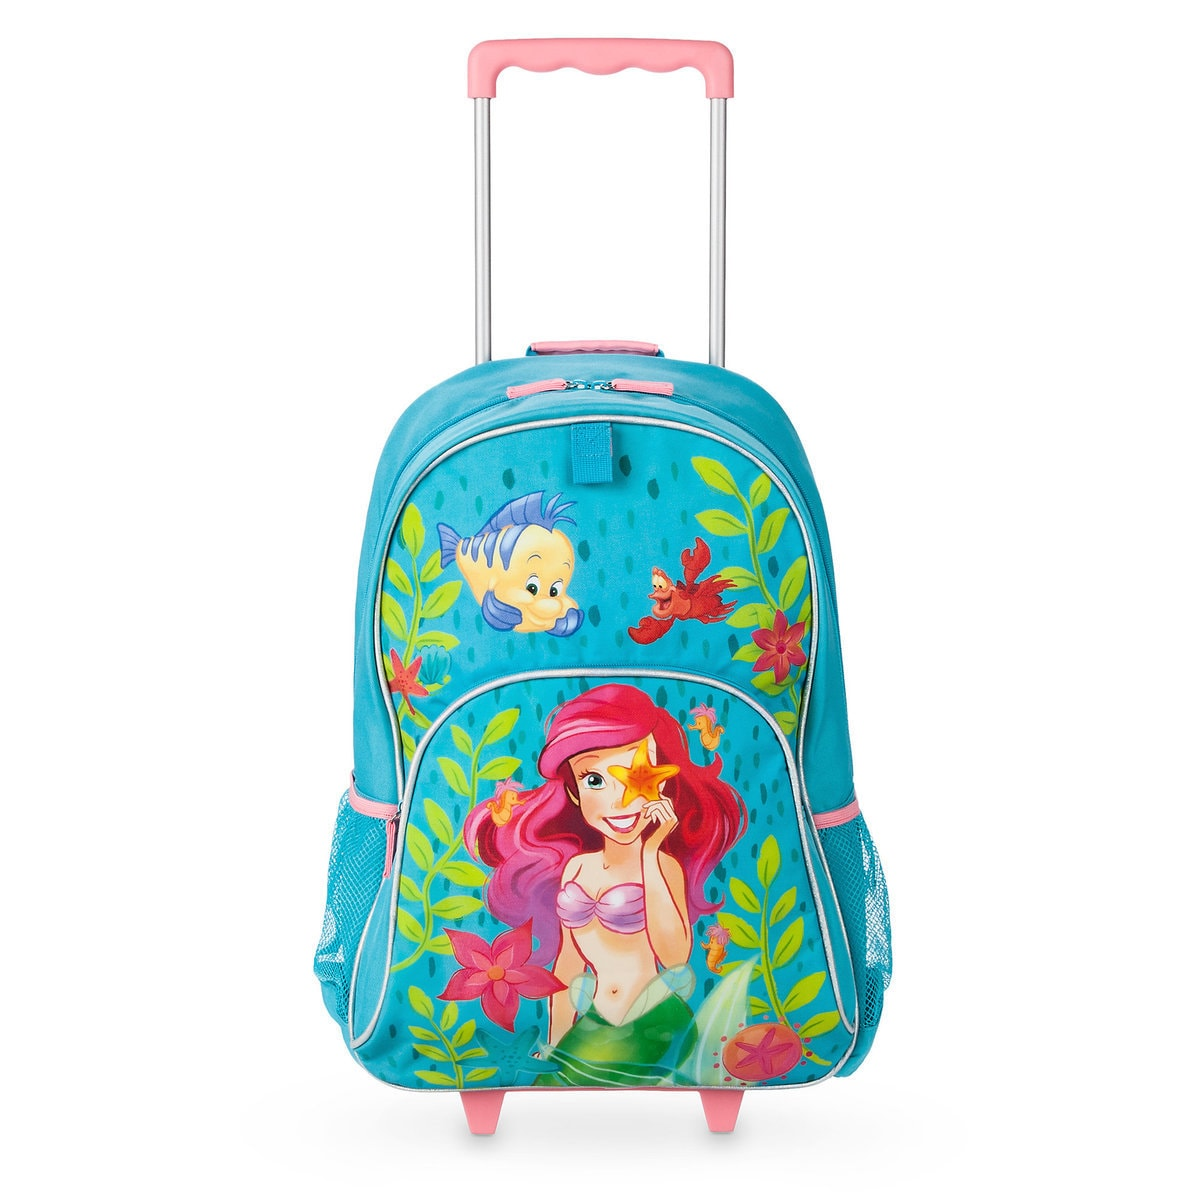 76fdf3fdc12 Product Image of The Little Mermaid Rolling Backpack - Personalizable   1